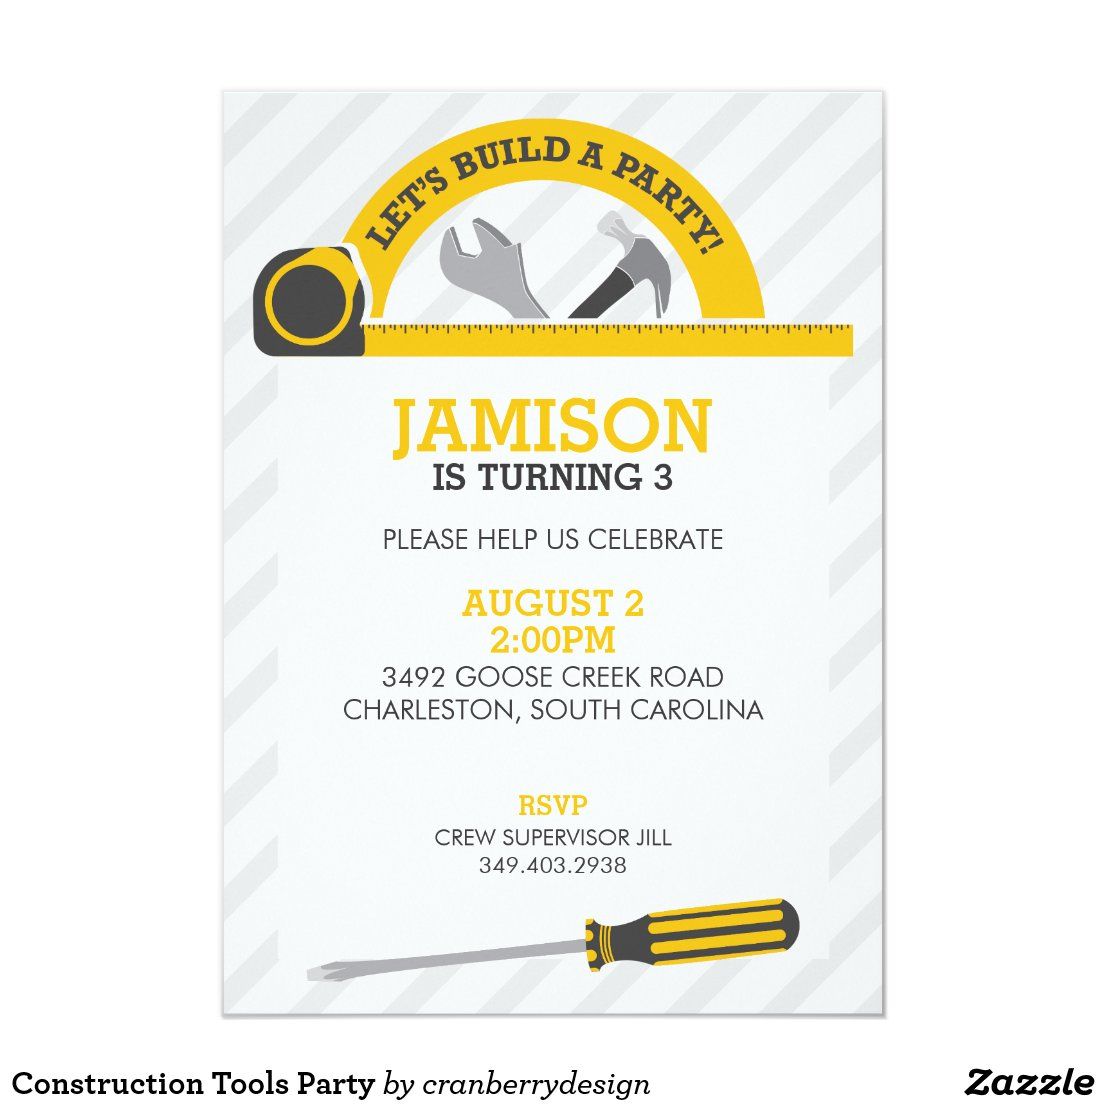 Construction Tools Party Card